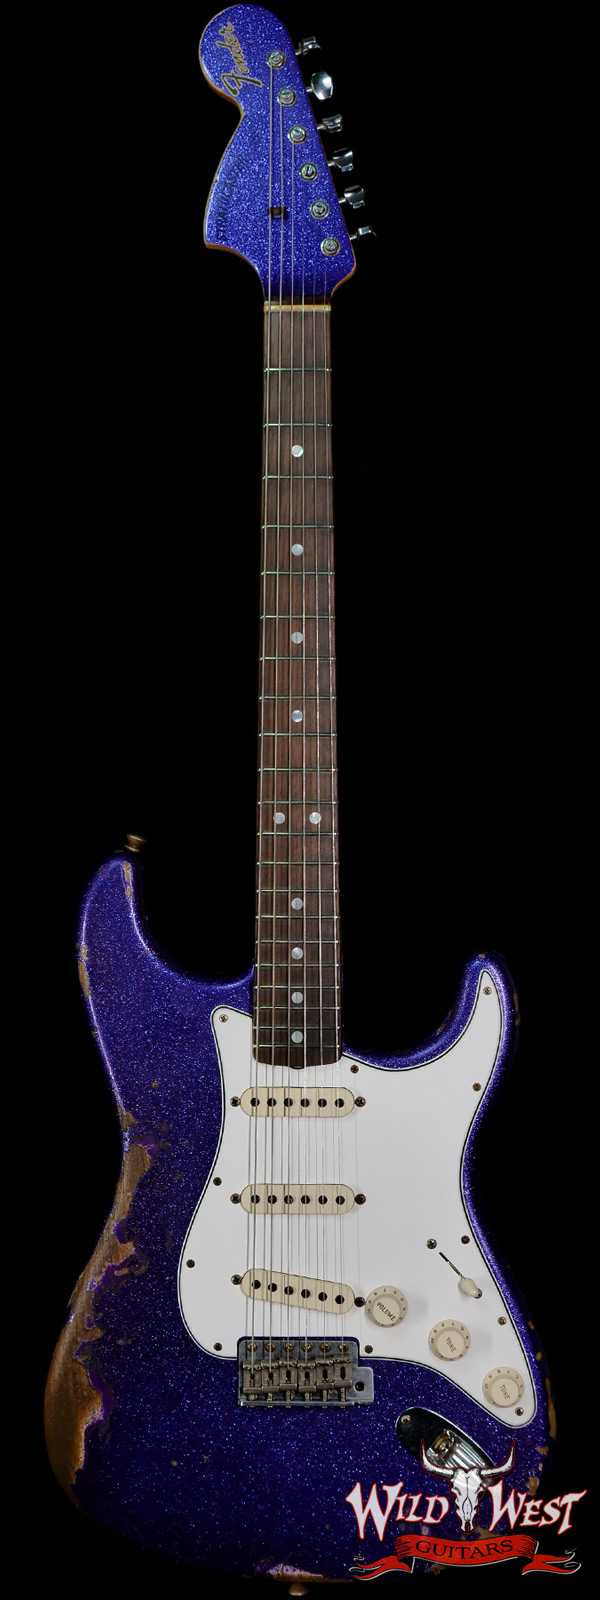 Fender Custom Shop 1969 Stratocaster Heavy Relic Reverse Matching Color Headstock Purple Sparkle